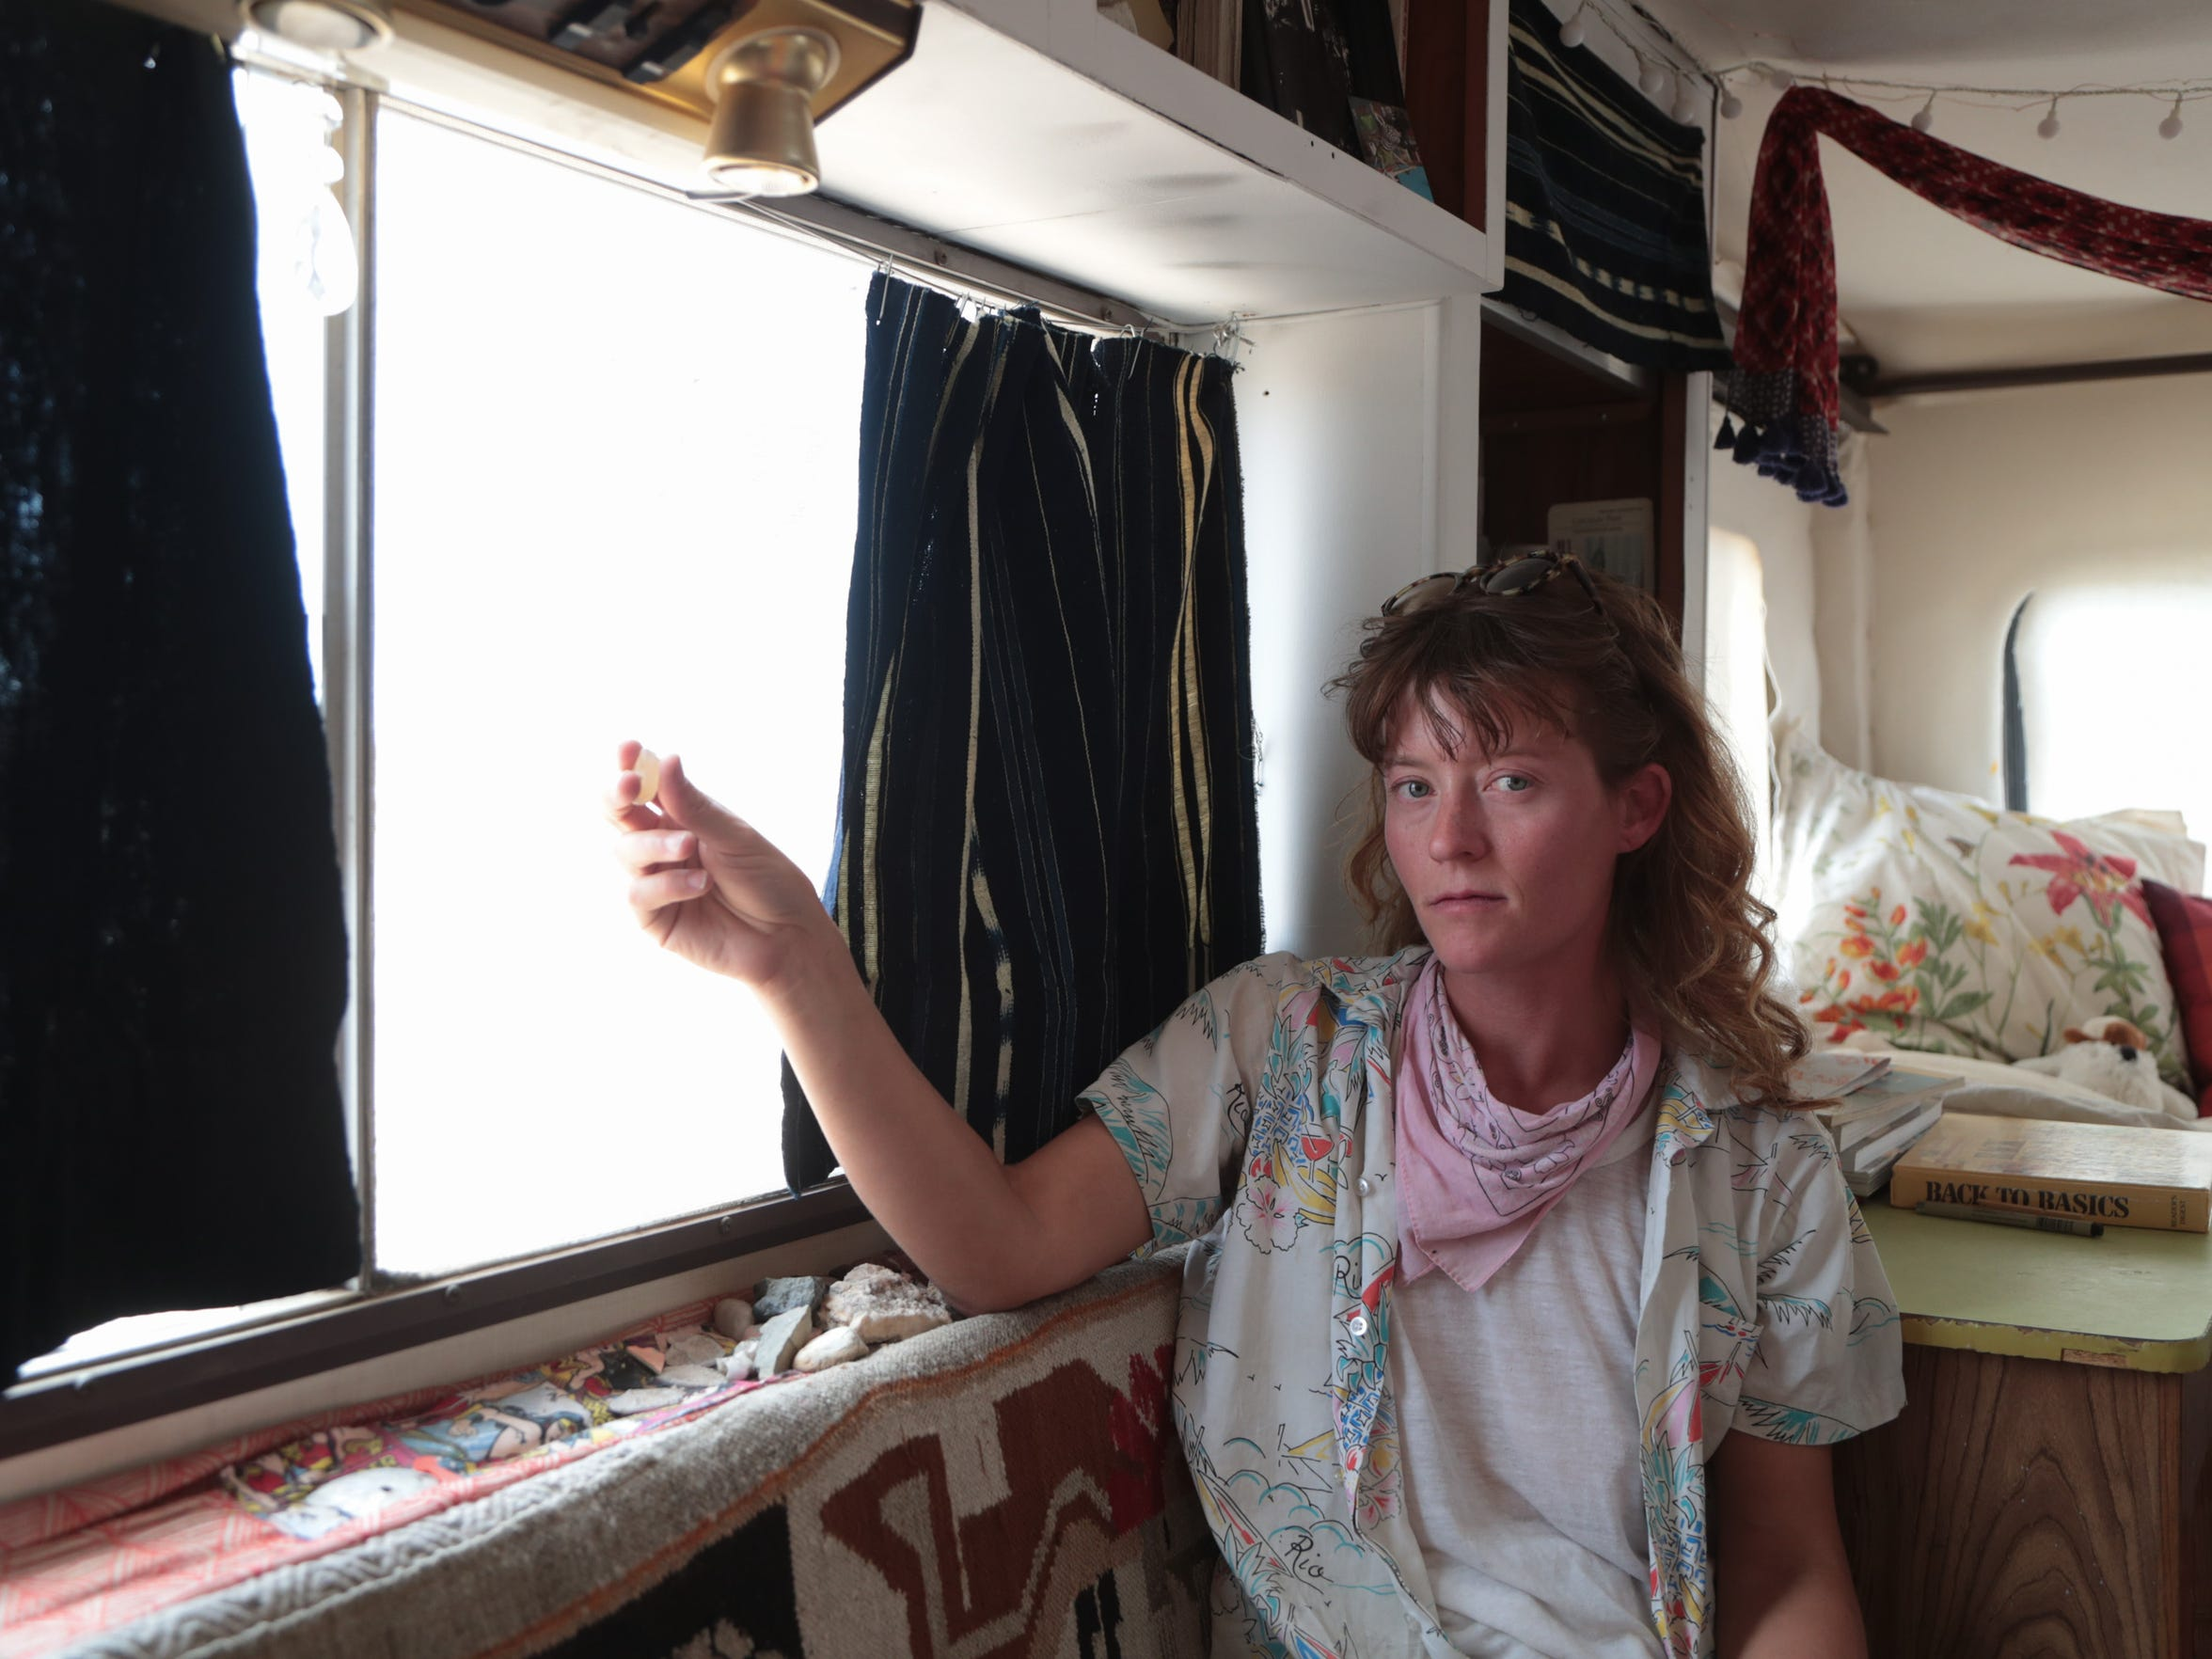 For the past two years Lindsey has been living in an RV in Wonder Valley, Calif. She is building a space that can bring artists and community together.